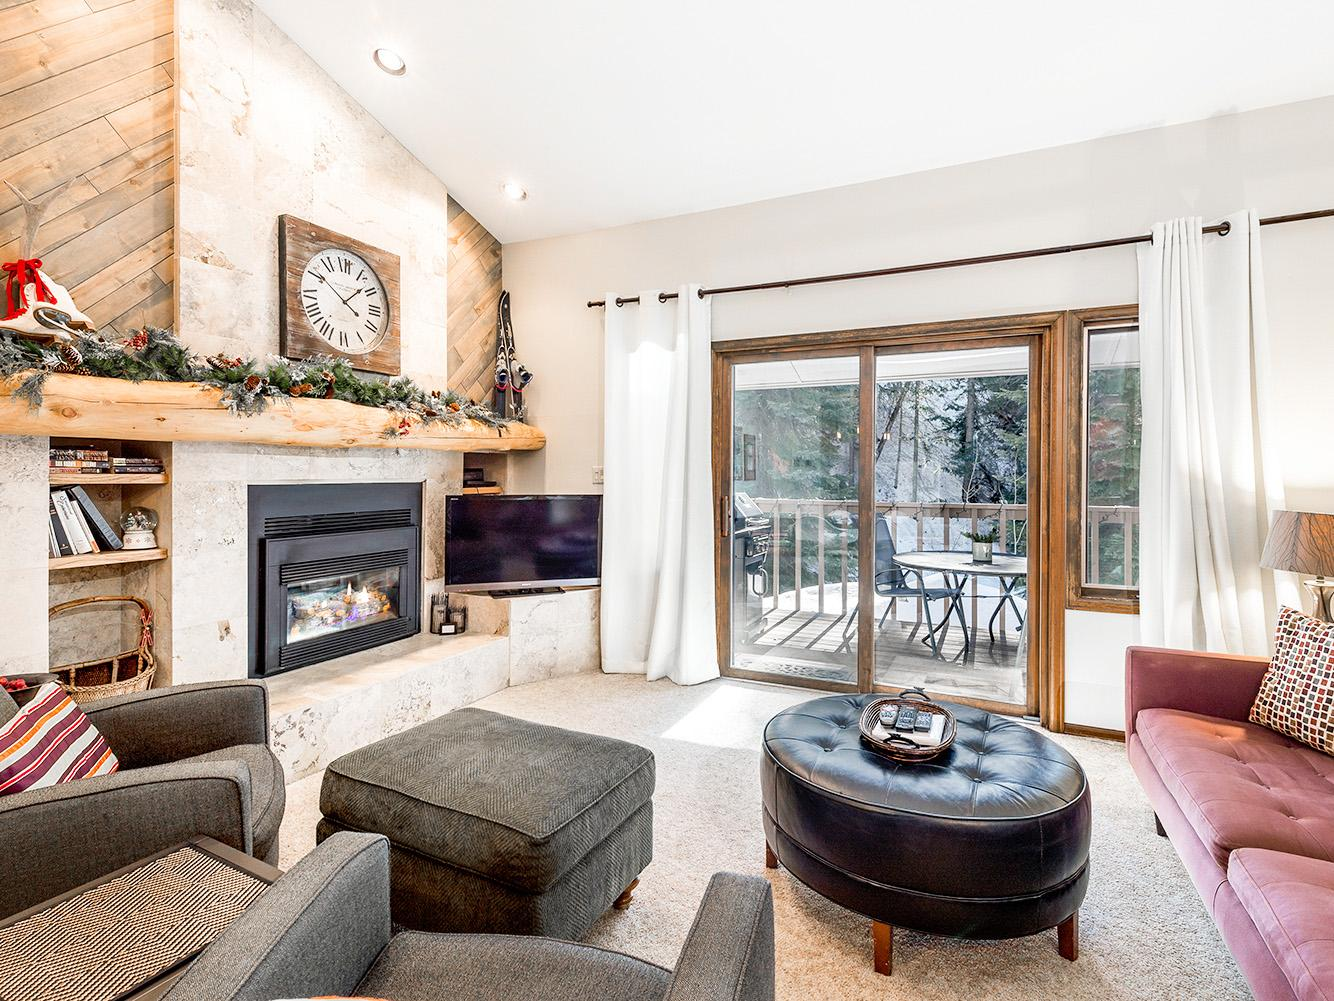 A comfortable living area features vaulted ceilings, rustic timber accents, and vintage ski decor.